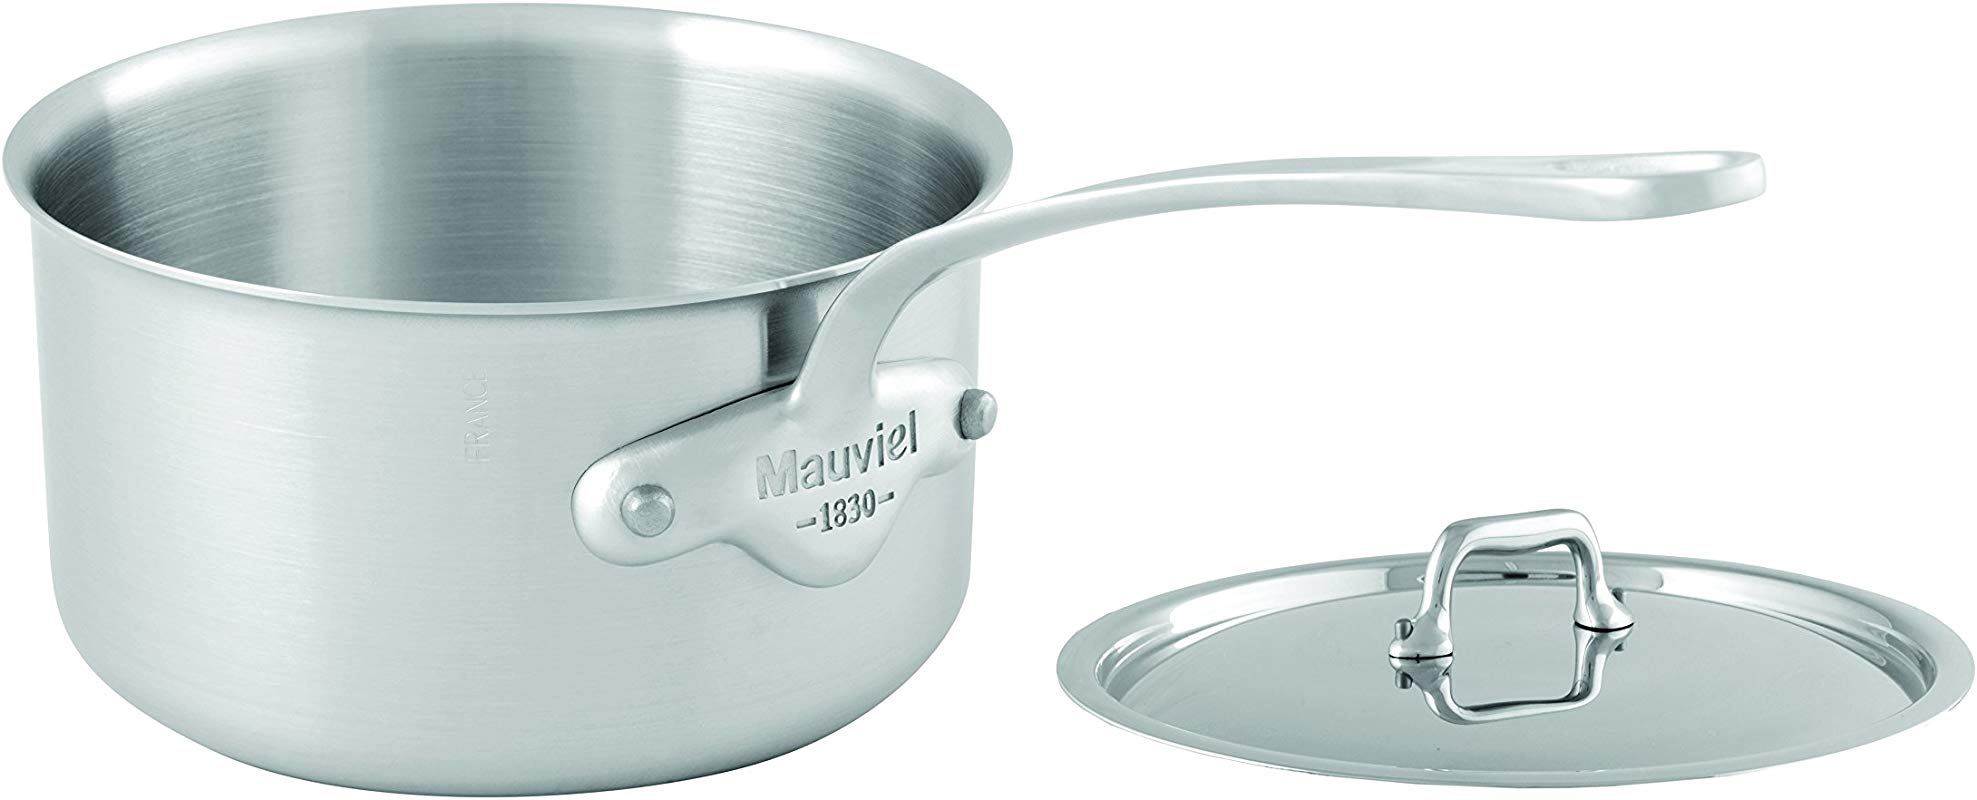 Mauviel 5010 17 M Urban 16cm 6 3 Saucepan With Lid Cast SS Handle Tri Ply Stainless Steel Sauce Pan Brushed